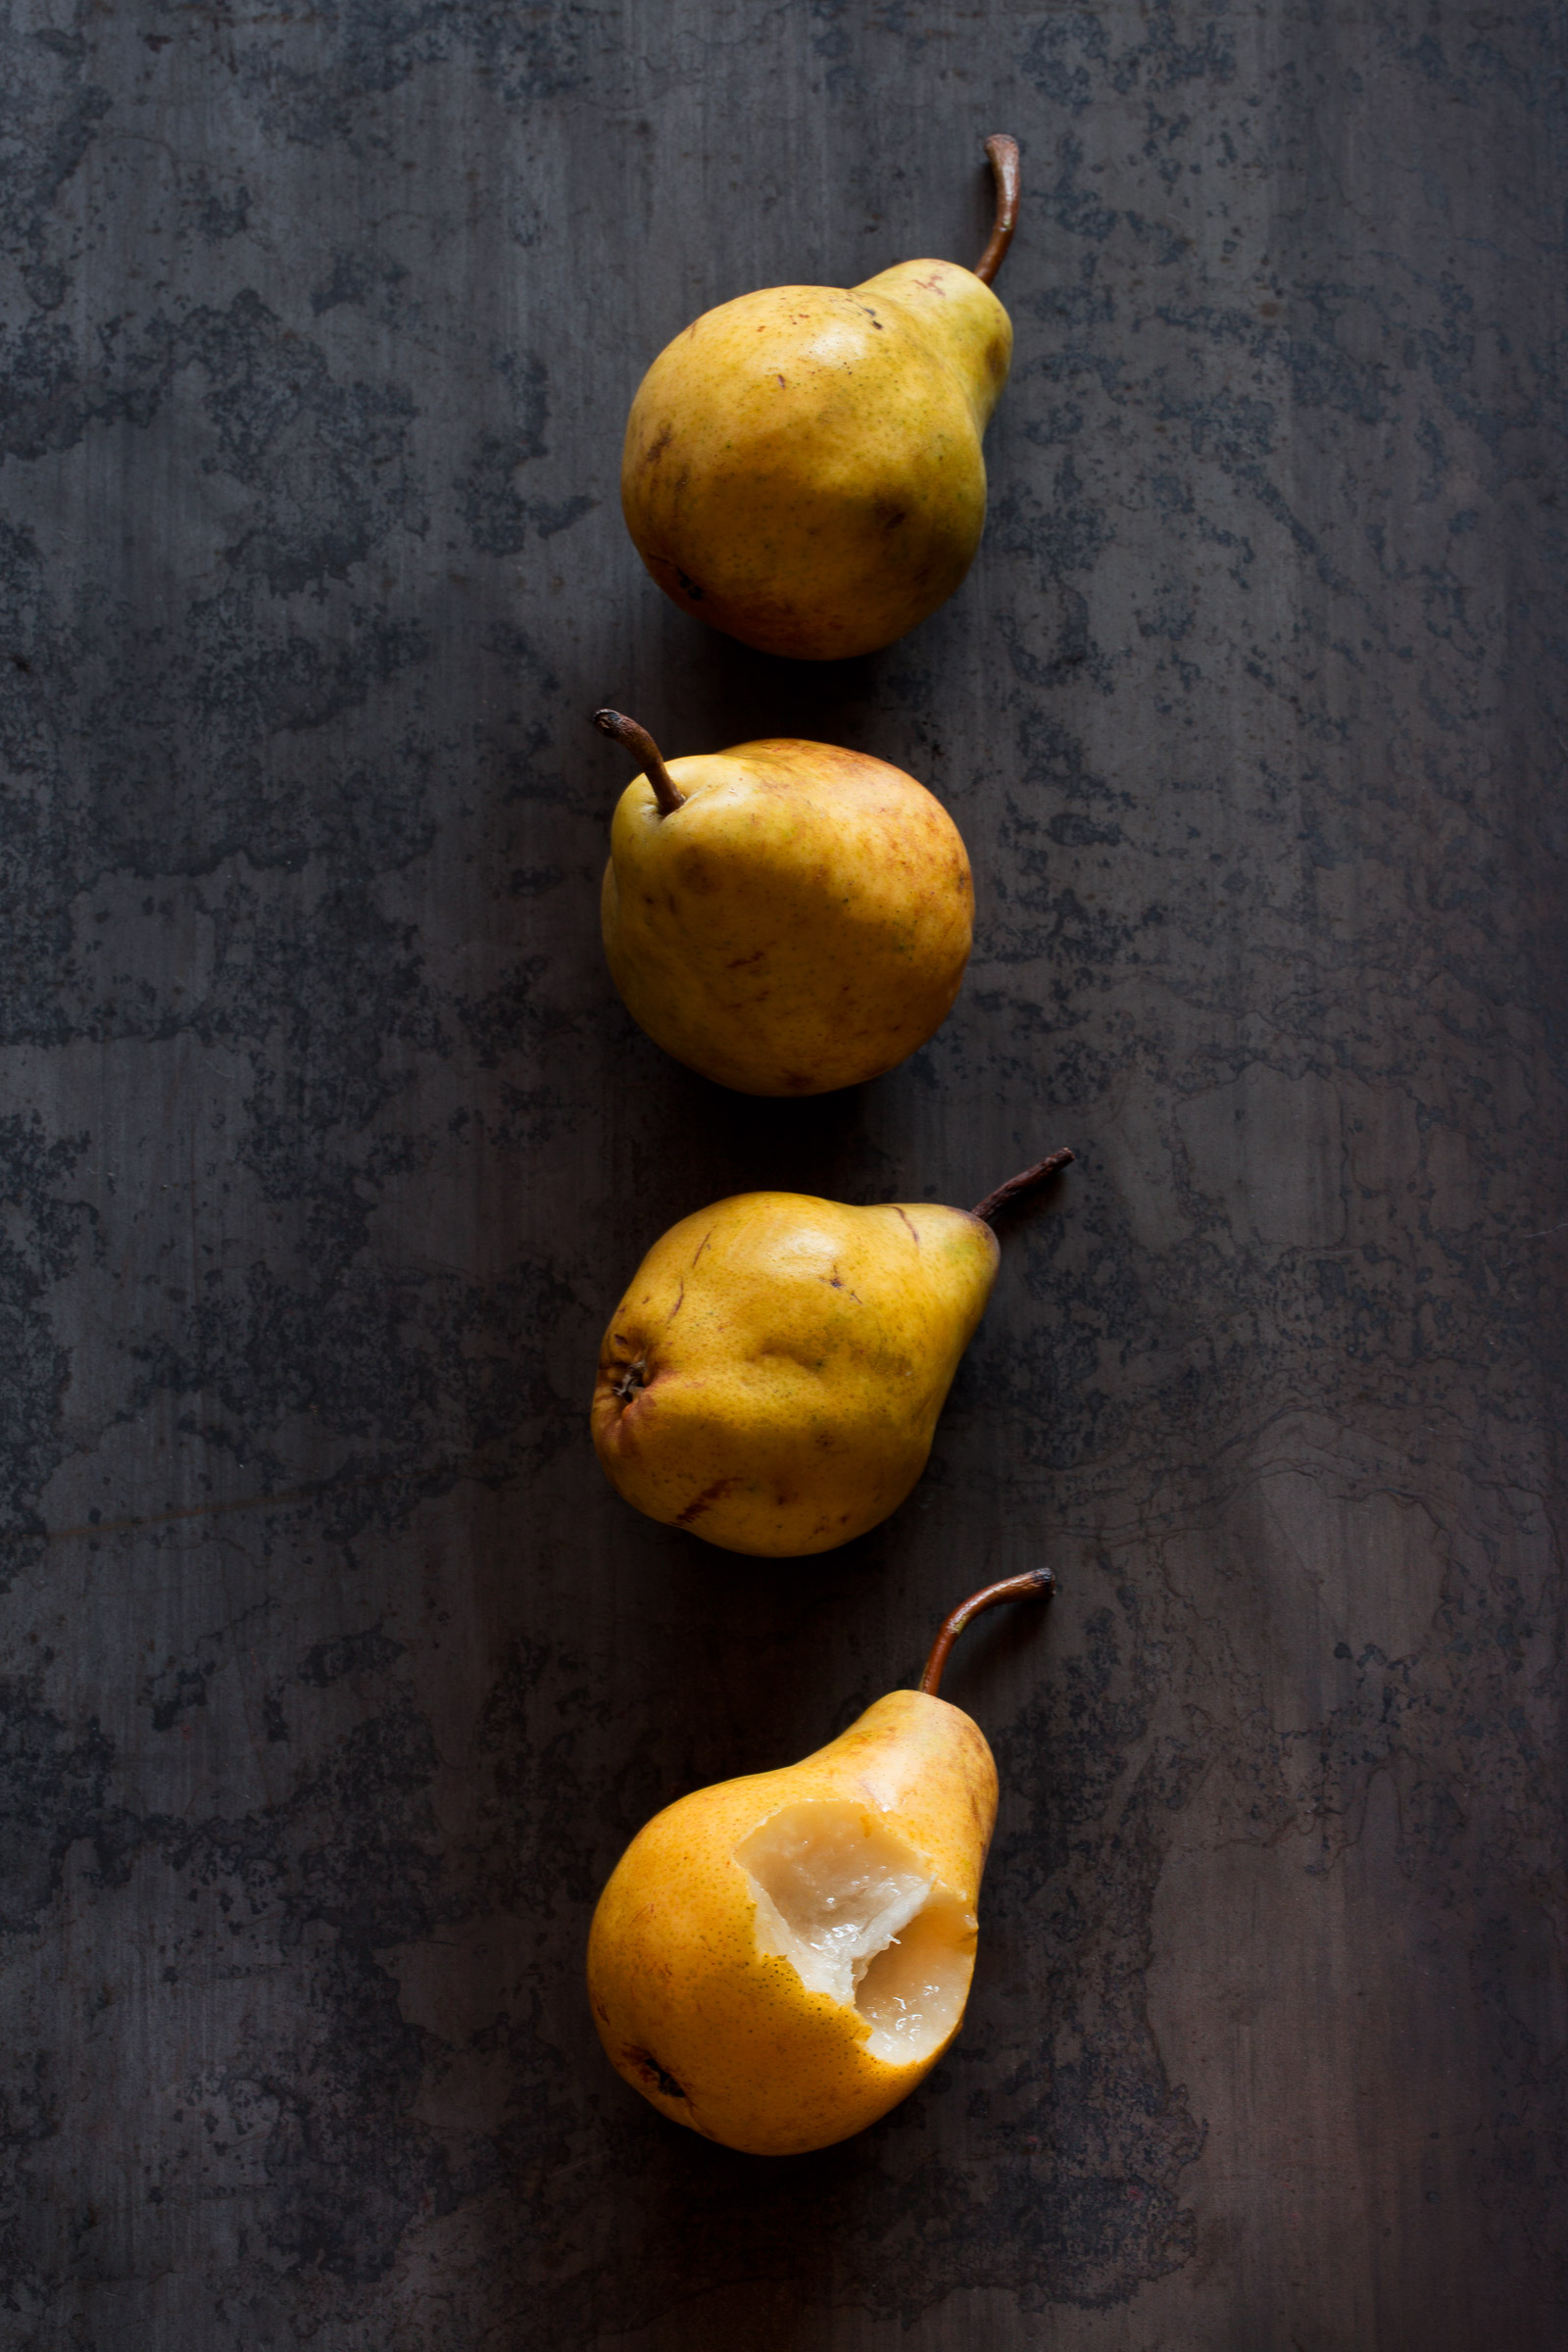 Bosc Pears, Yellow, Rose Hodges Food Photography